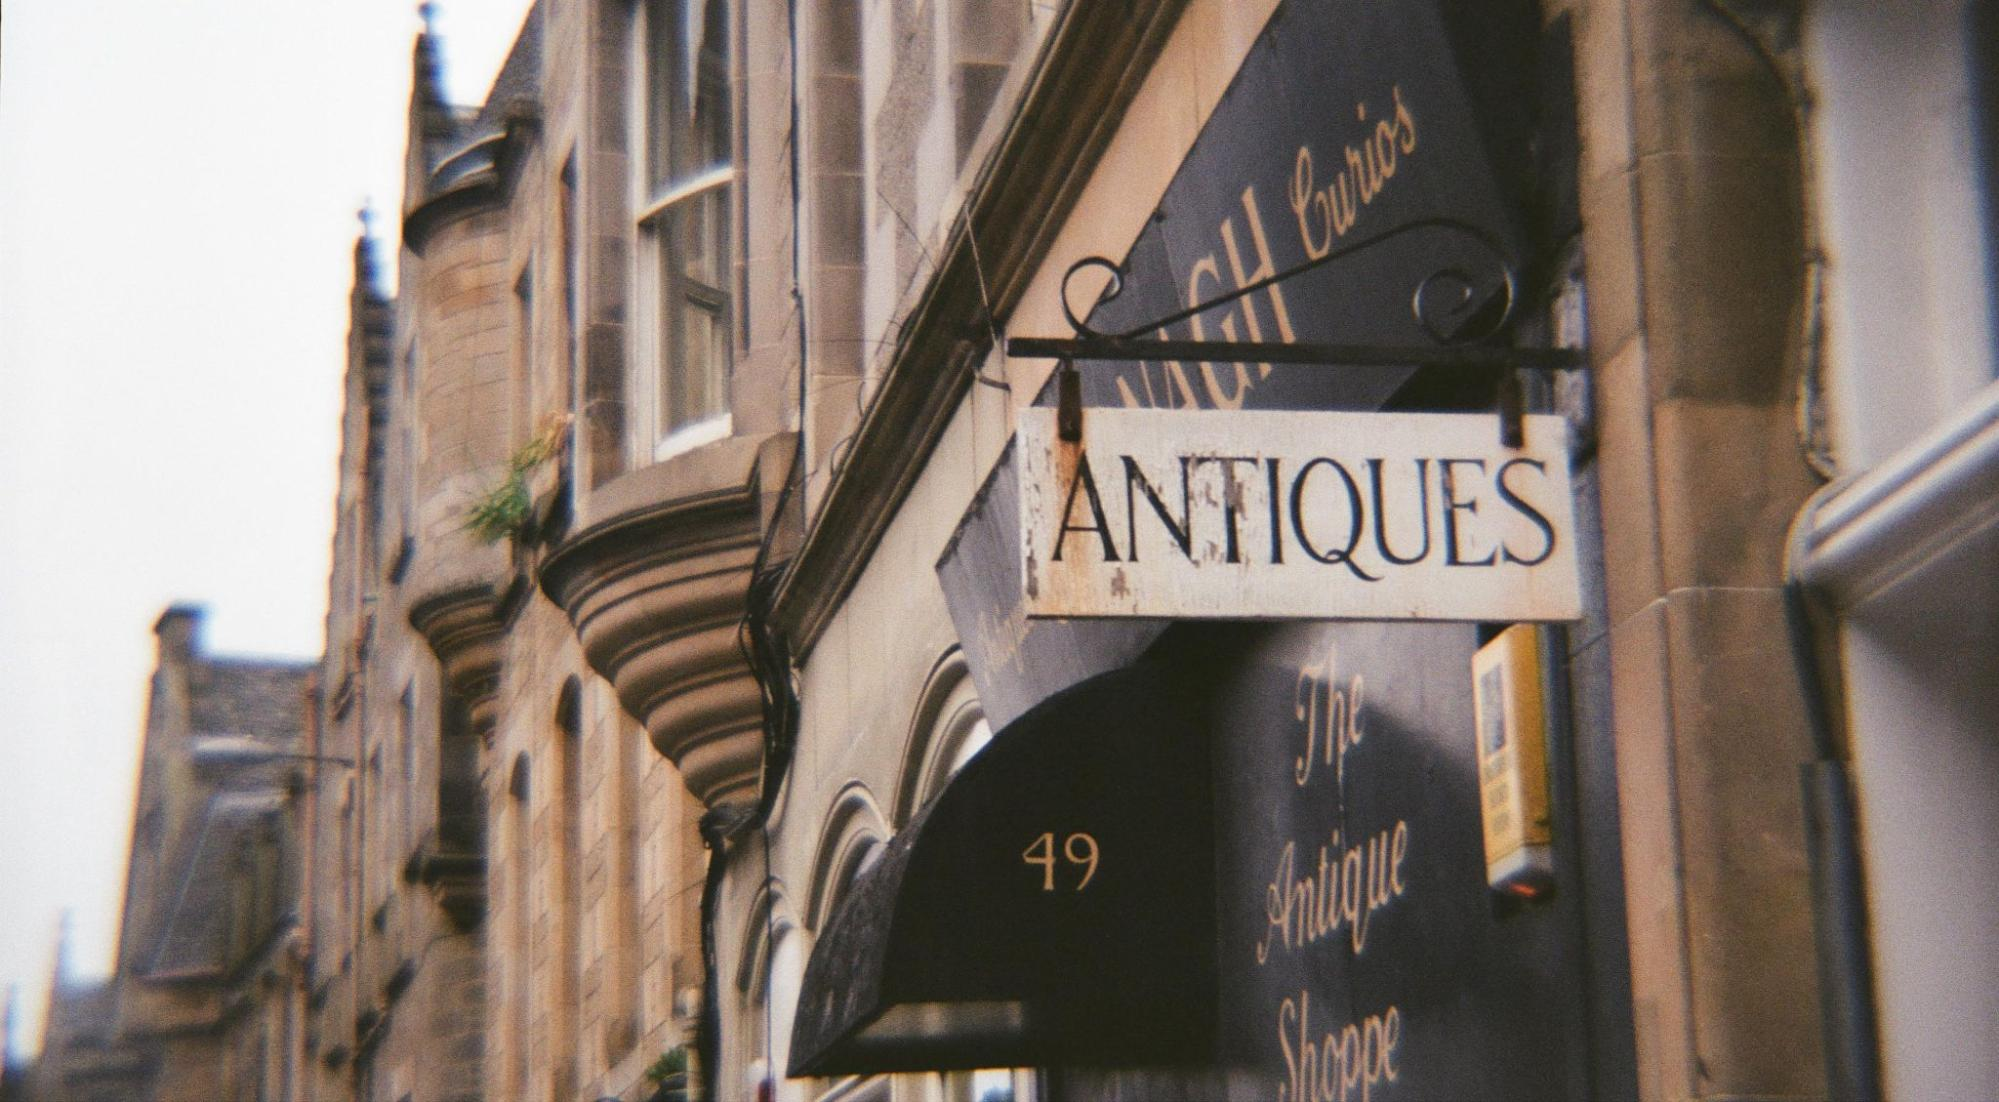 Antique store, find the best antique shops in Franklin, TN, Downtown Franklin and Brentwood, TN on FranklinIs.